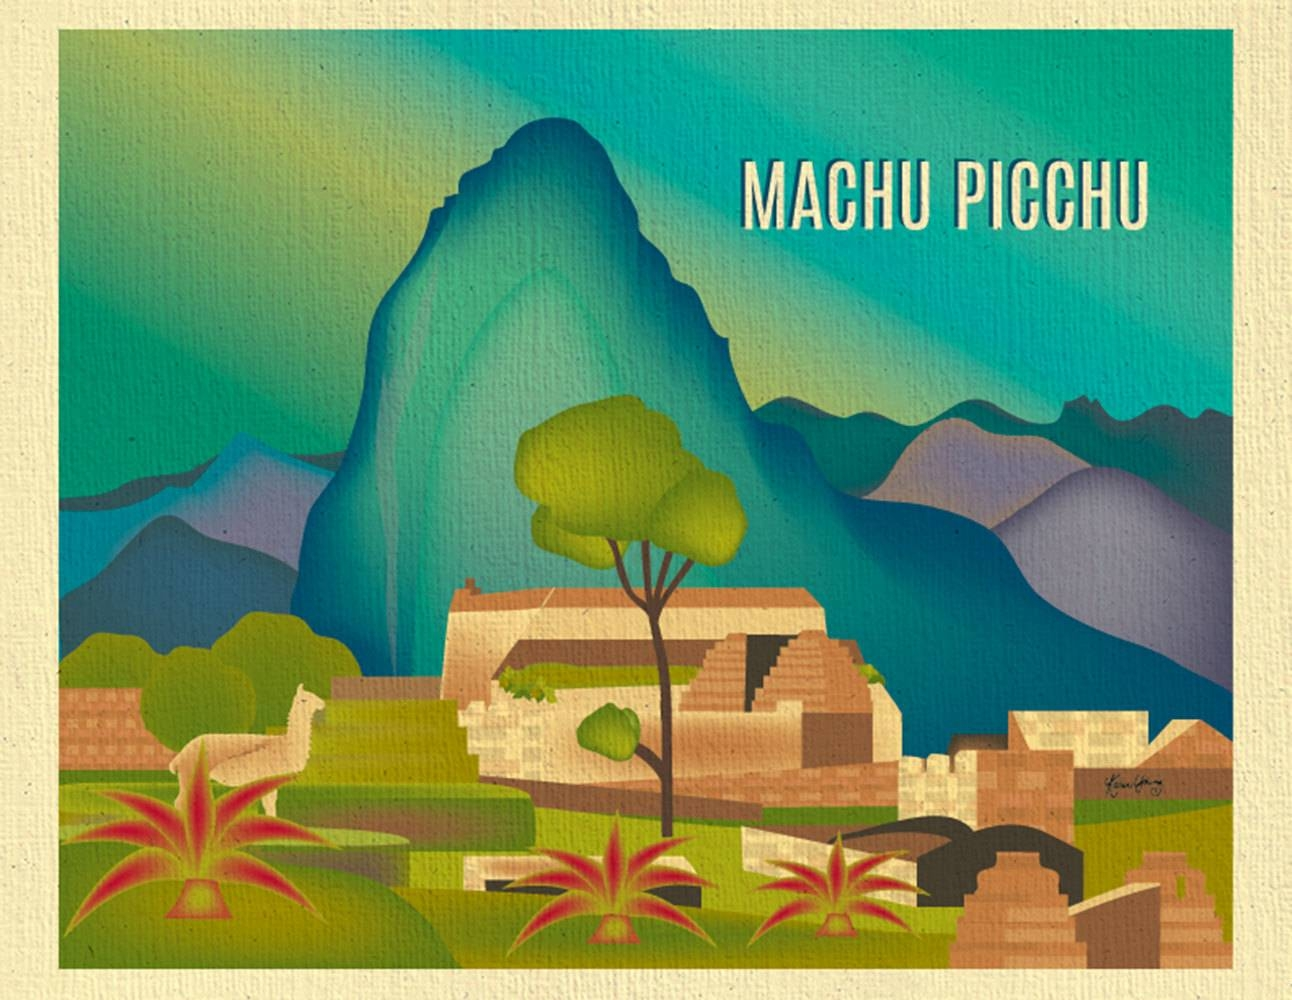 Machu Picchu Skyline Art Print Peru Artwork Loose Petals Within Most Popular Peruvian Wall Art (View 17 of 30)